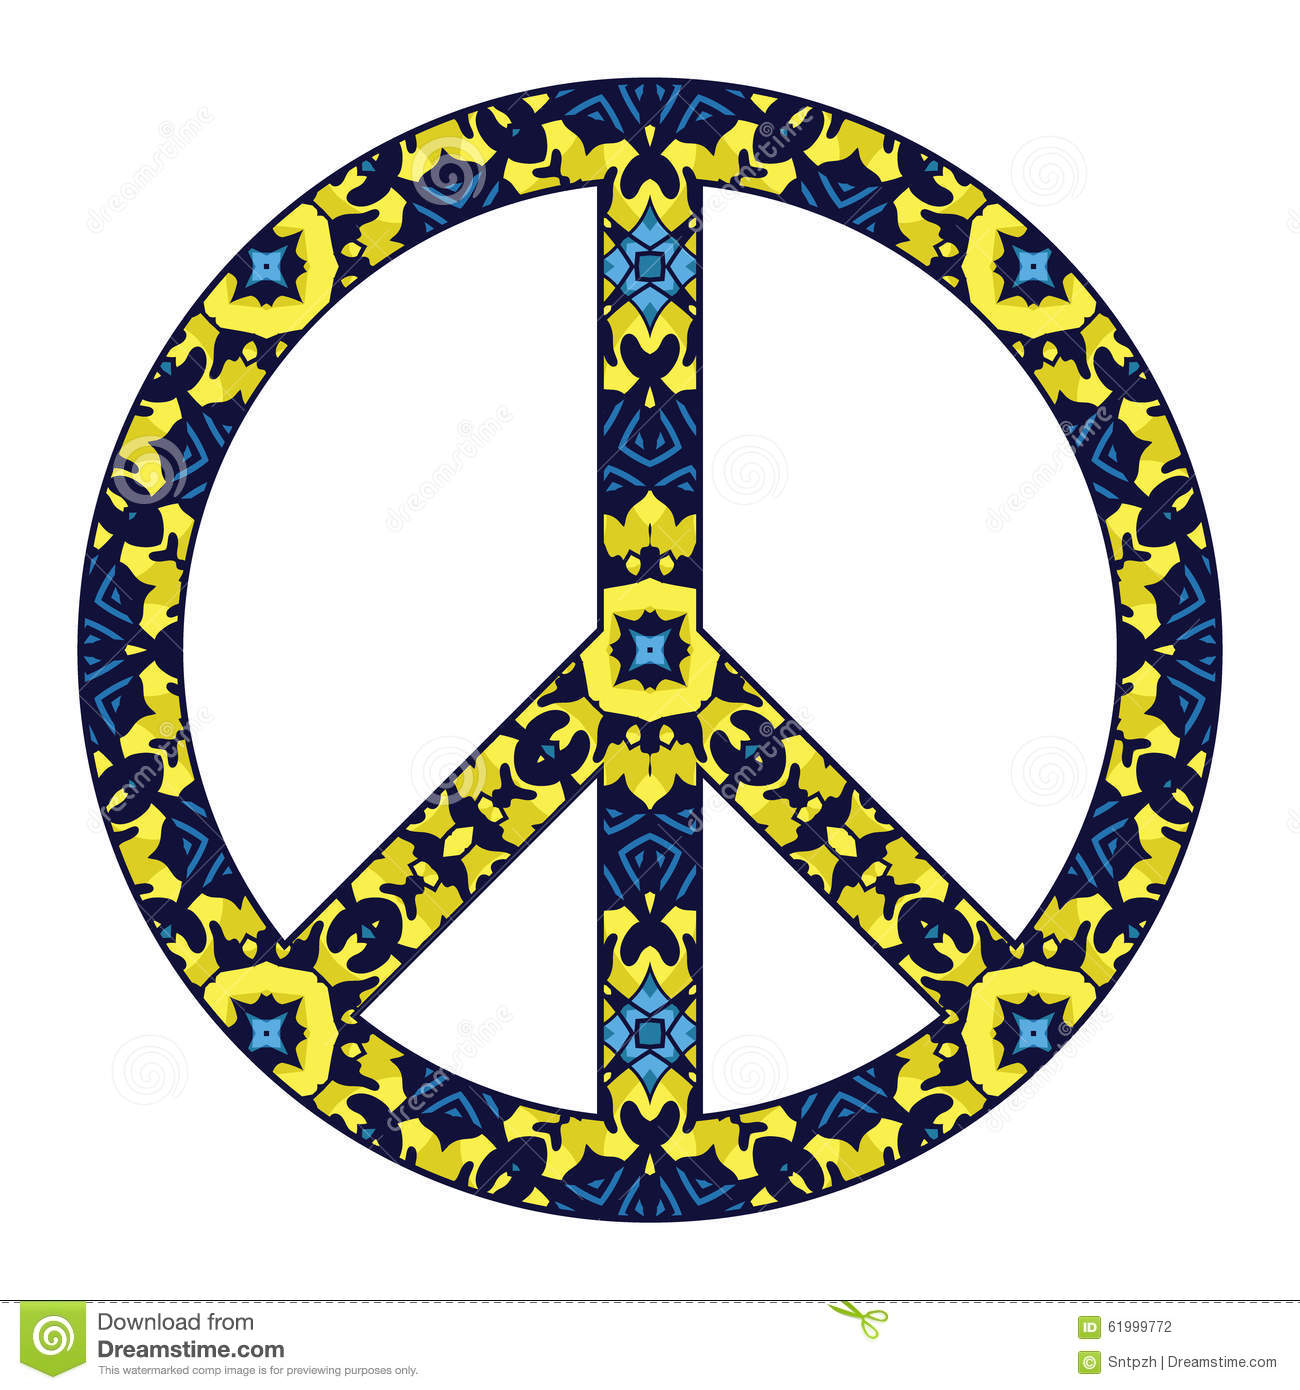 the kolanut as a peace symbol A number of peace symbols have been used many ways in various cultures and contexts the dove and olive branch was used symbolically by early christians and then eventually became a secular peace symbol, popularized by pablo picasso after world war ii.